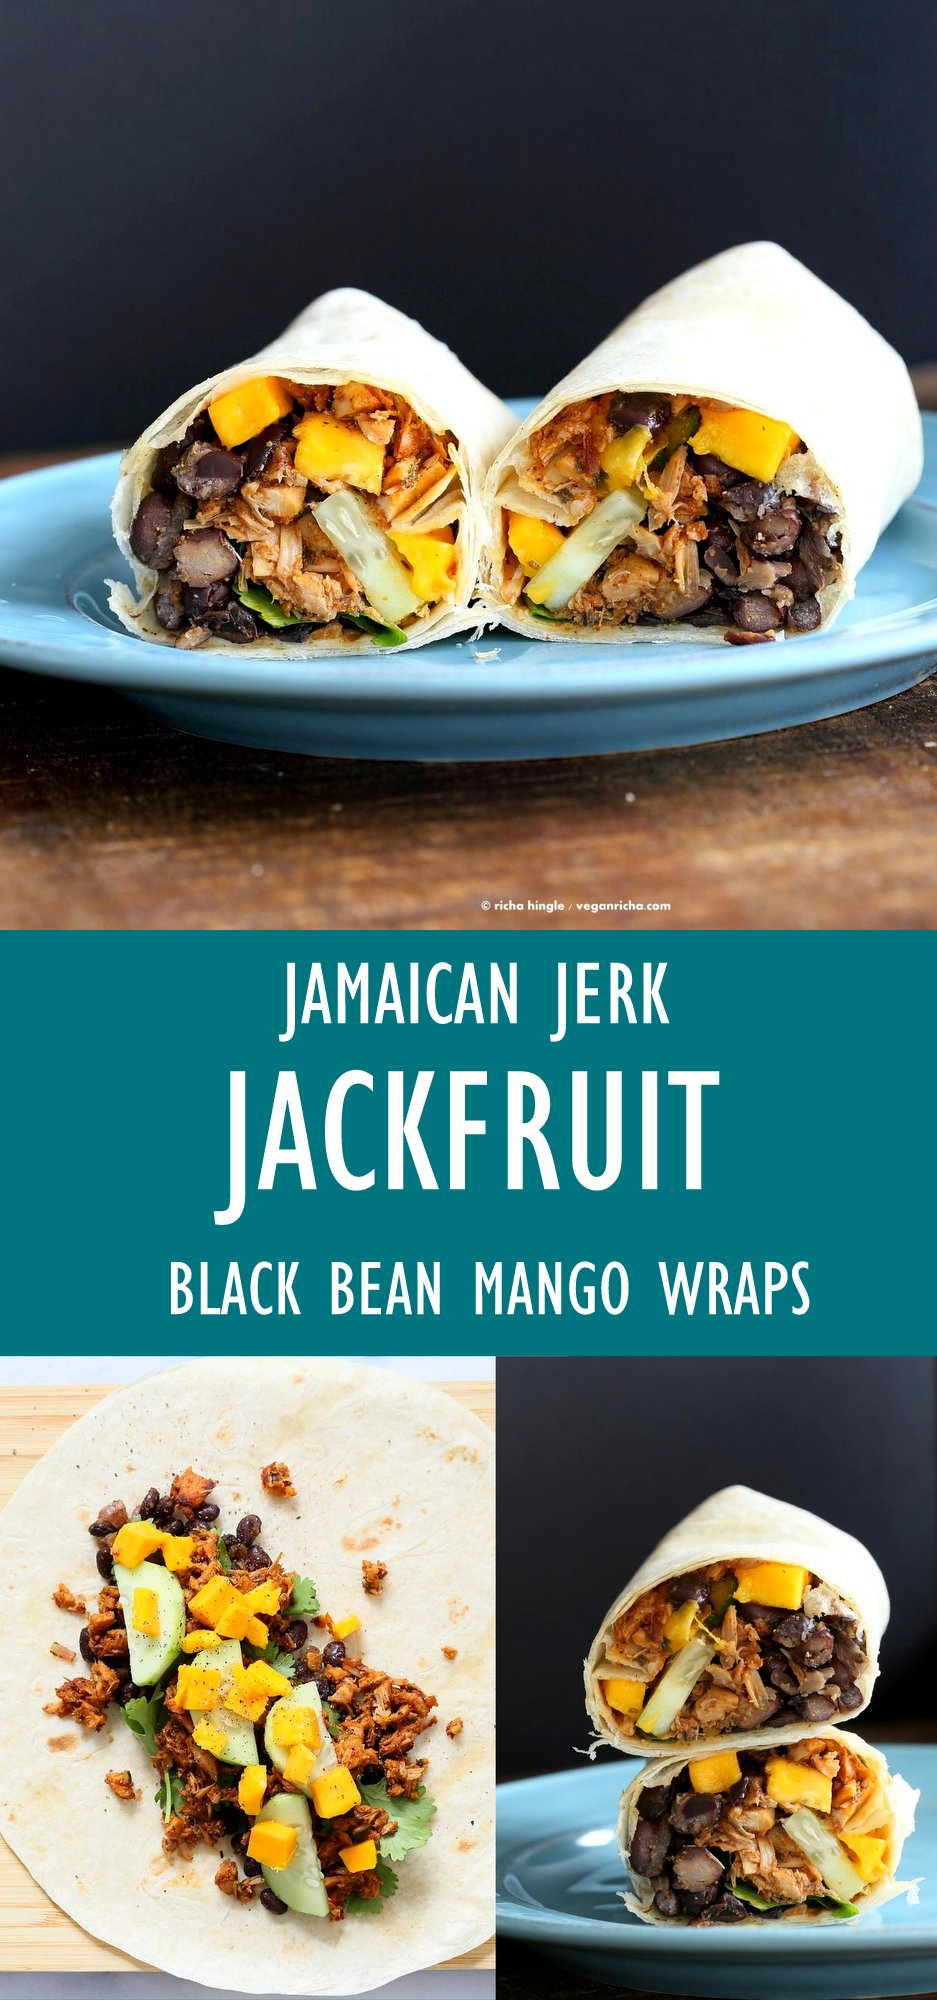 Jamaican Jerk Jackfruit Caribbean Black Bean Mango Wraps. These Burritos are packed with hot shredded jerk jackfruit, black beans, mango and cucumbers. Serve as wraps or make a sandwich or bowl. #Vegan #Soyfree #Recipe. Can be #glutenfree | VeganRicha.com